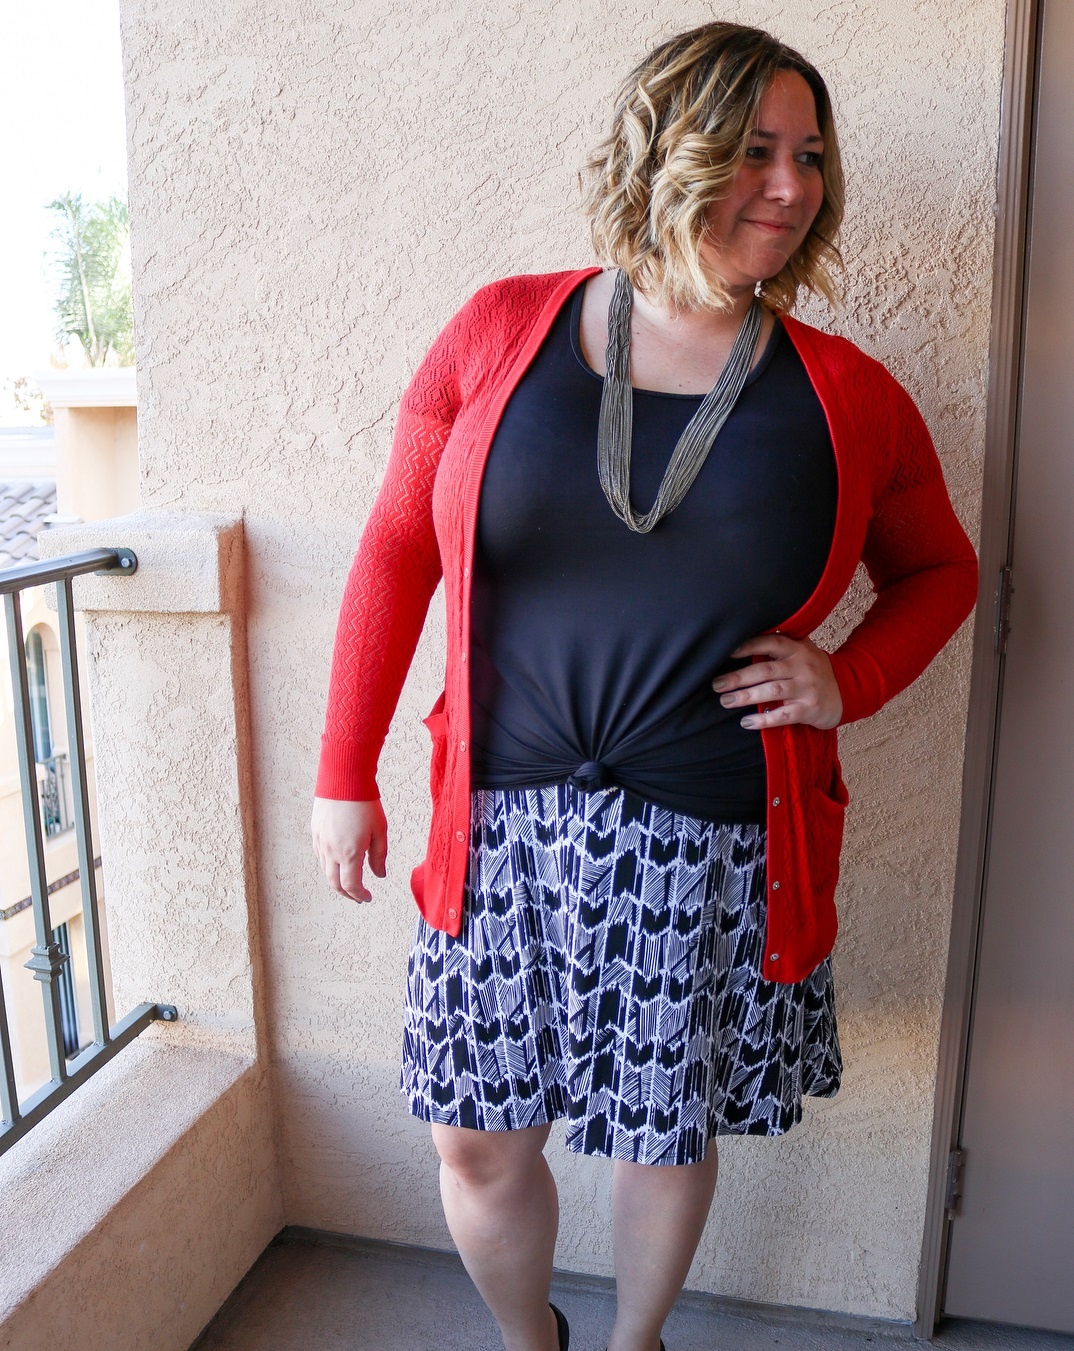 Wonderful Black Top With Artistic Print Skirt And Red Cardigan For Plus Size